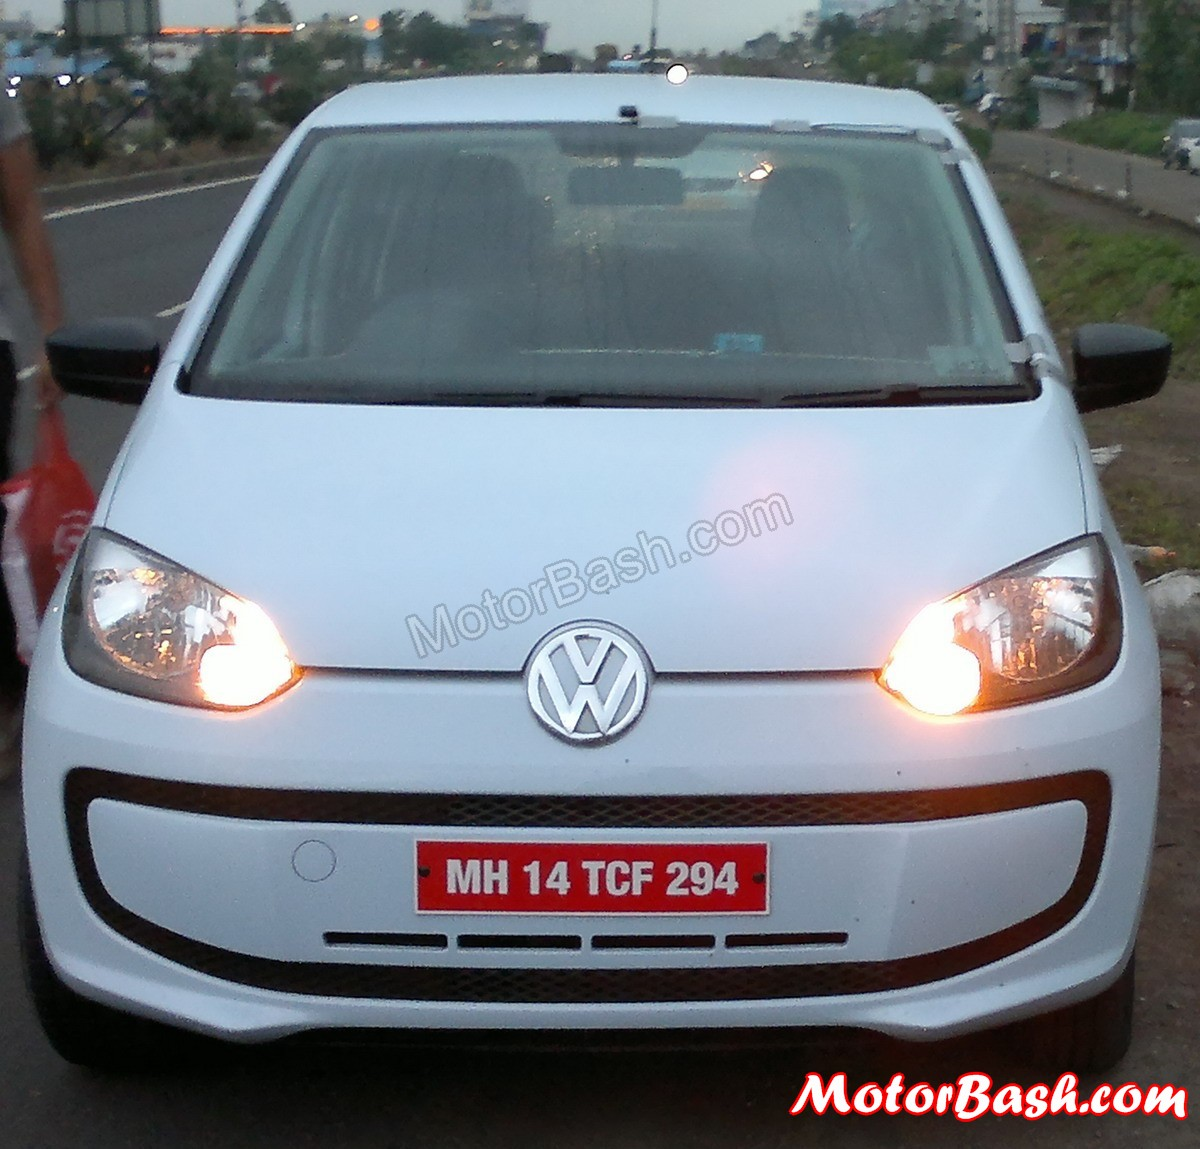 Volkswagen_Up_by_MotorBash